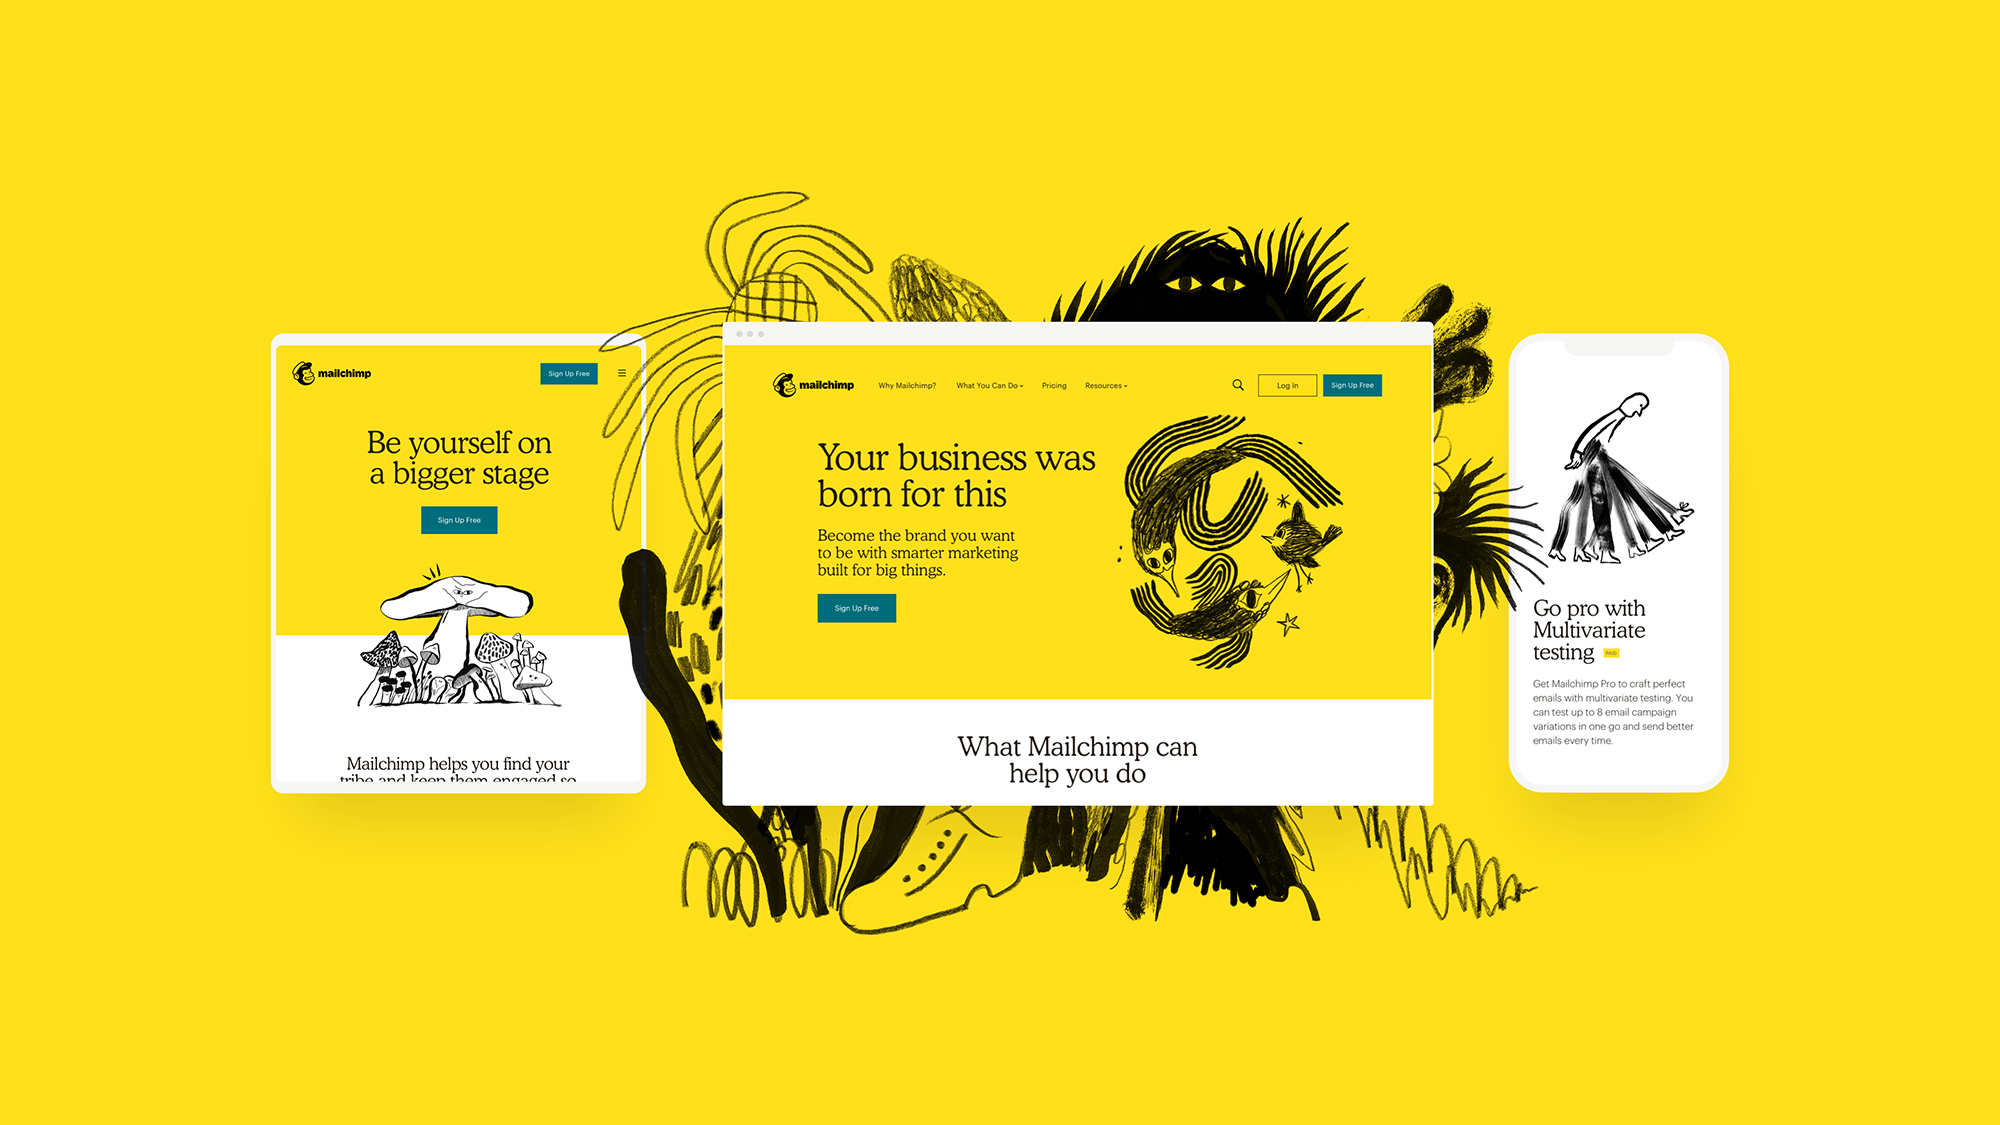 Cover image: Mailchimp